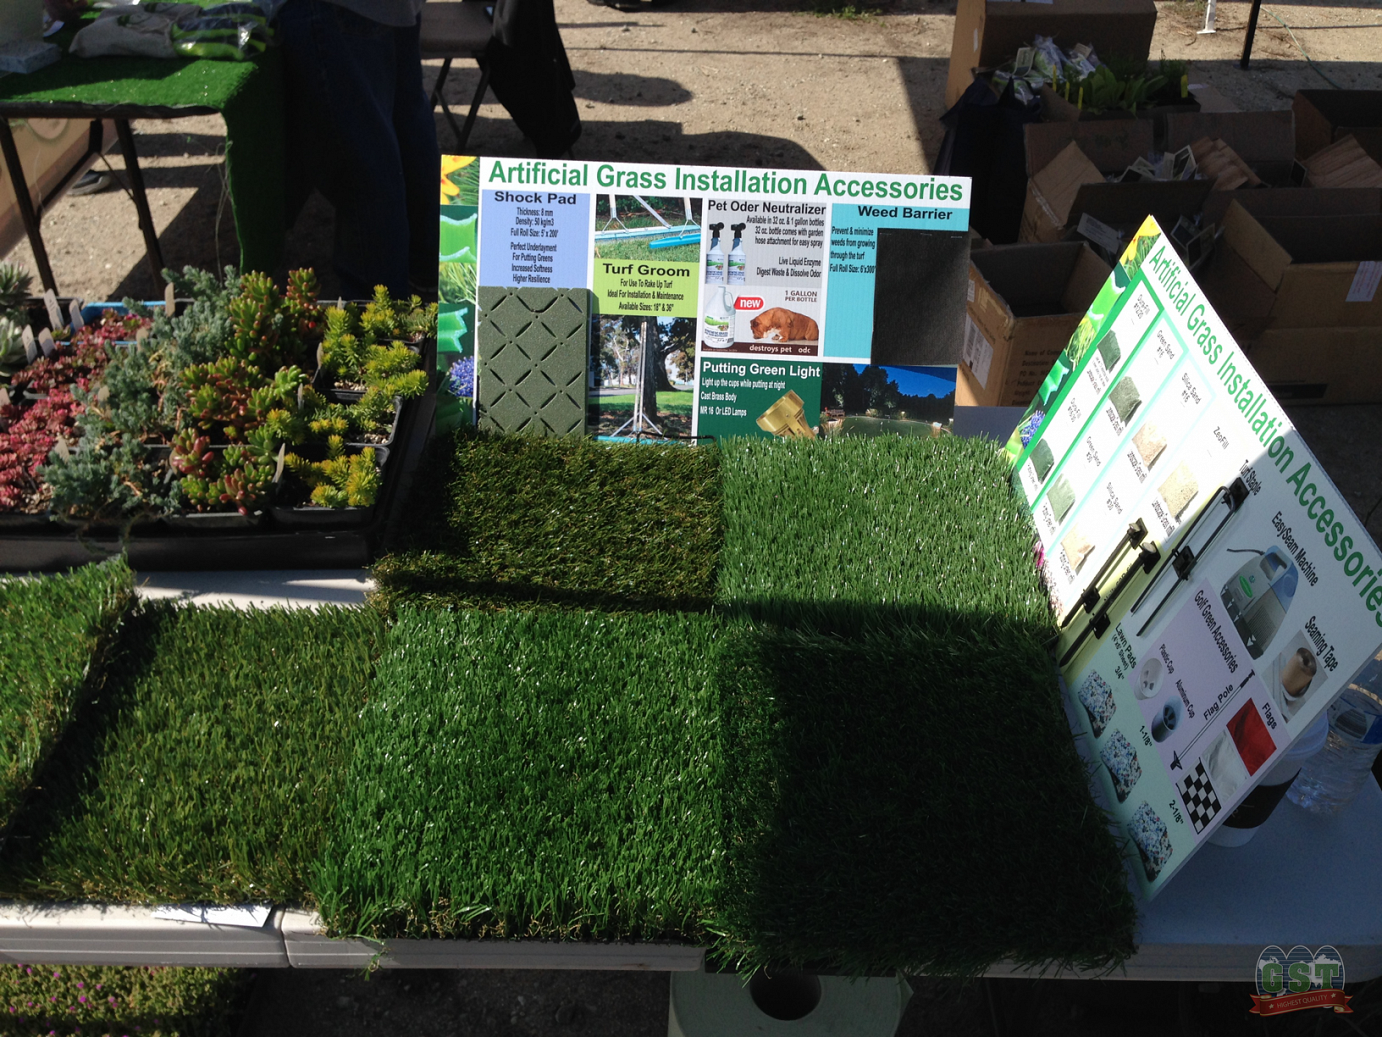 fake-grass Global Syn-Turf Showcases Drought-Tolerant Products at Carmel Valley Garden Show